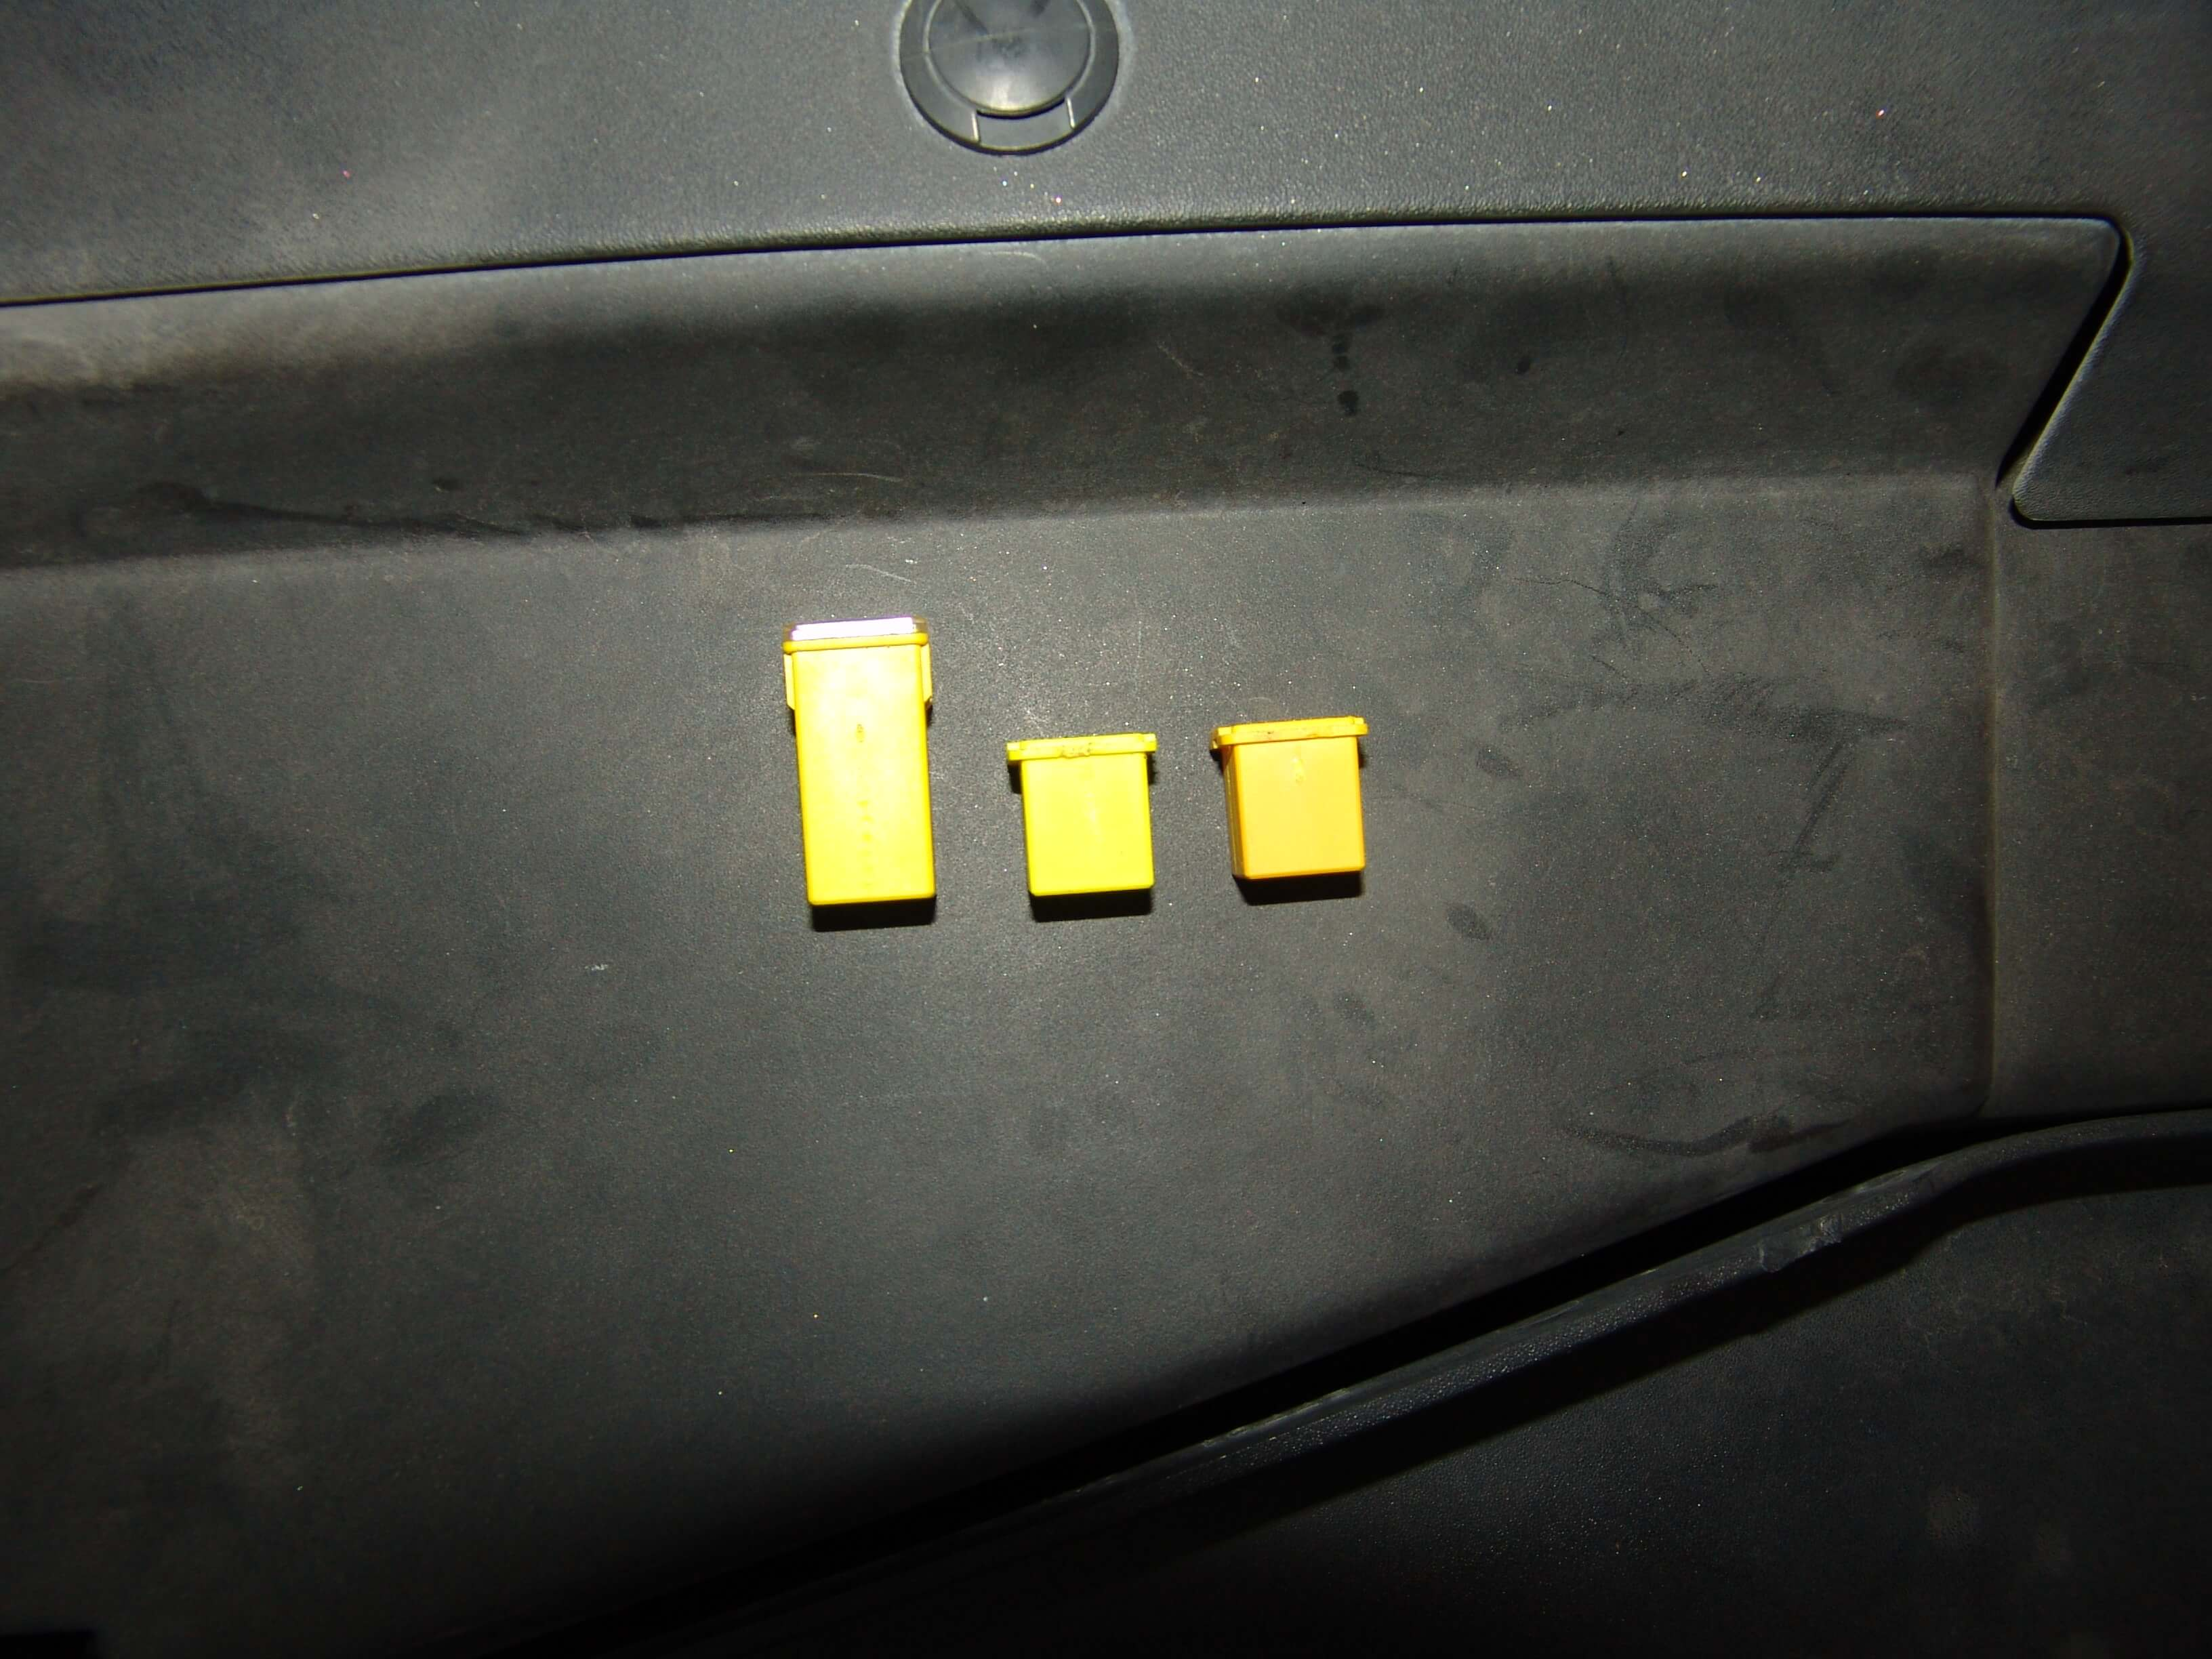 Sparkys Answers 2007 Chevrolet Tahoe Lt Lbec2 Fuse 75 Blows Dsm Box The Wiring Diagram Showed That There Was A Red Black Wire Connects Circuit To